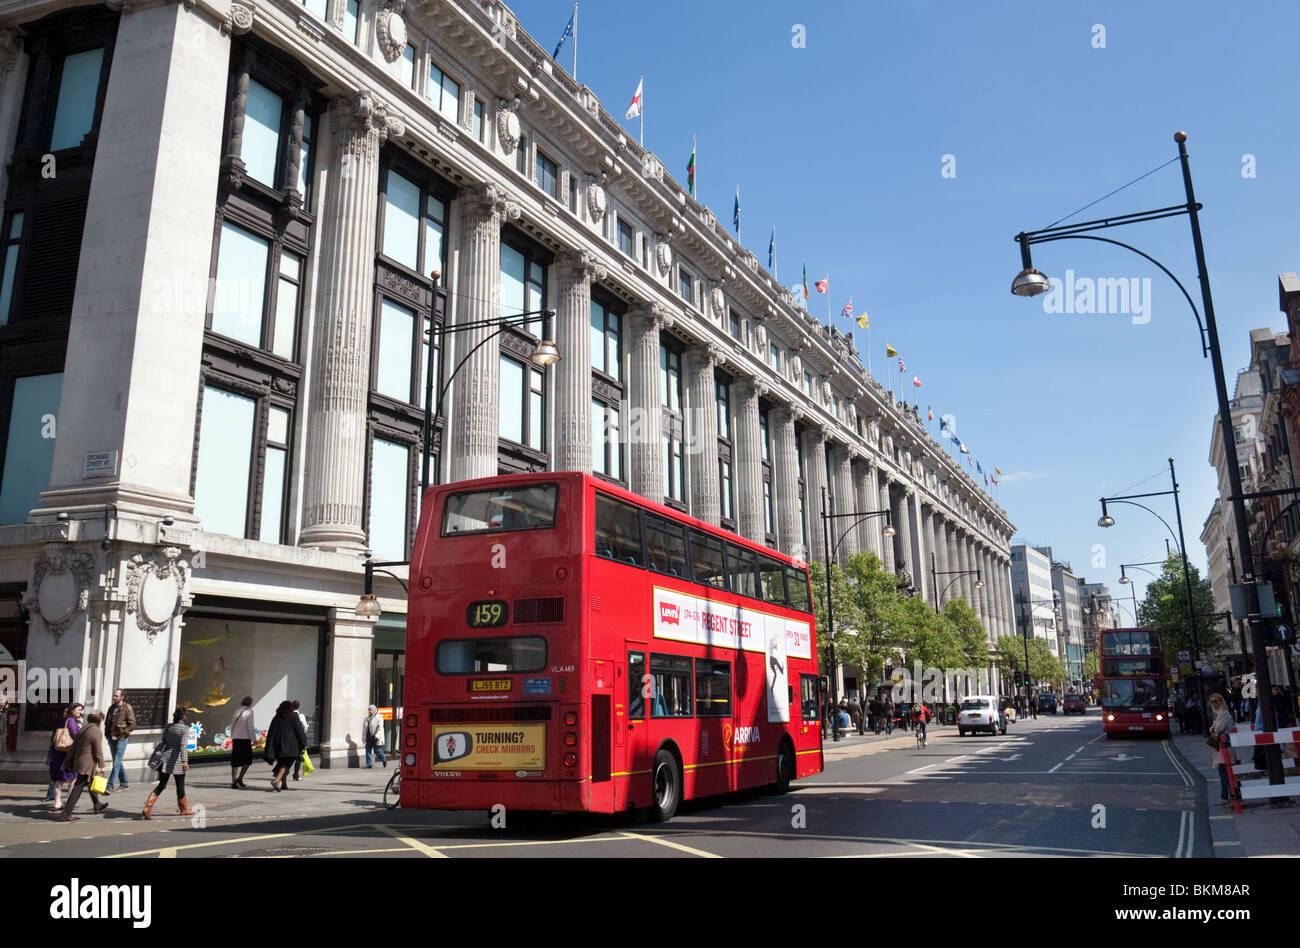 Buses outside Selfridges store on a sunny day in summer, Oxford Street, London UK Stock Photo